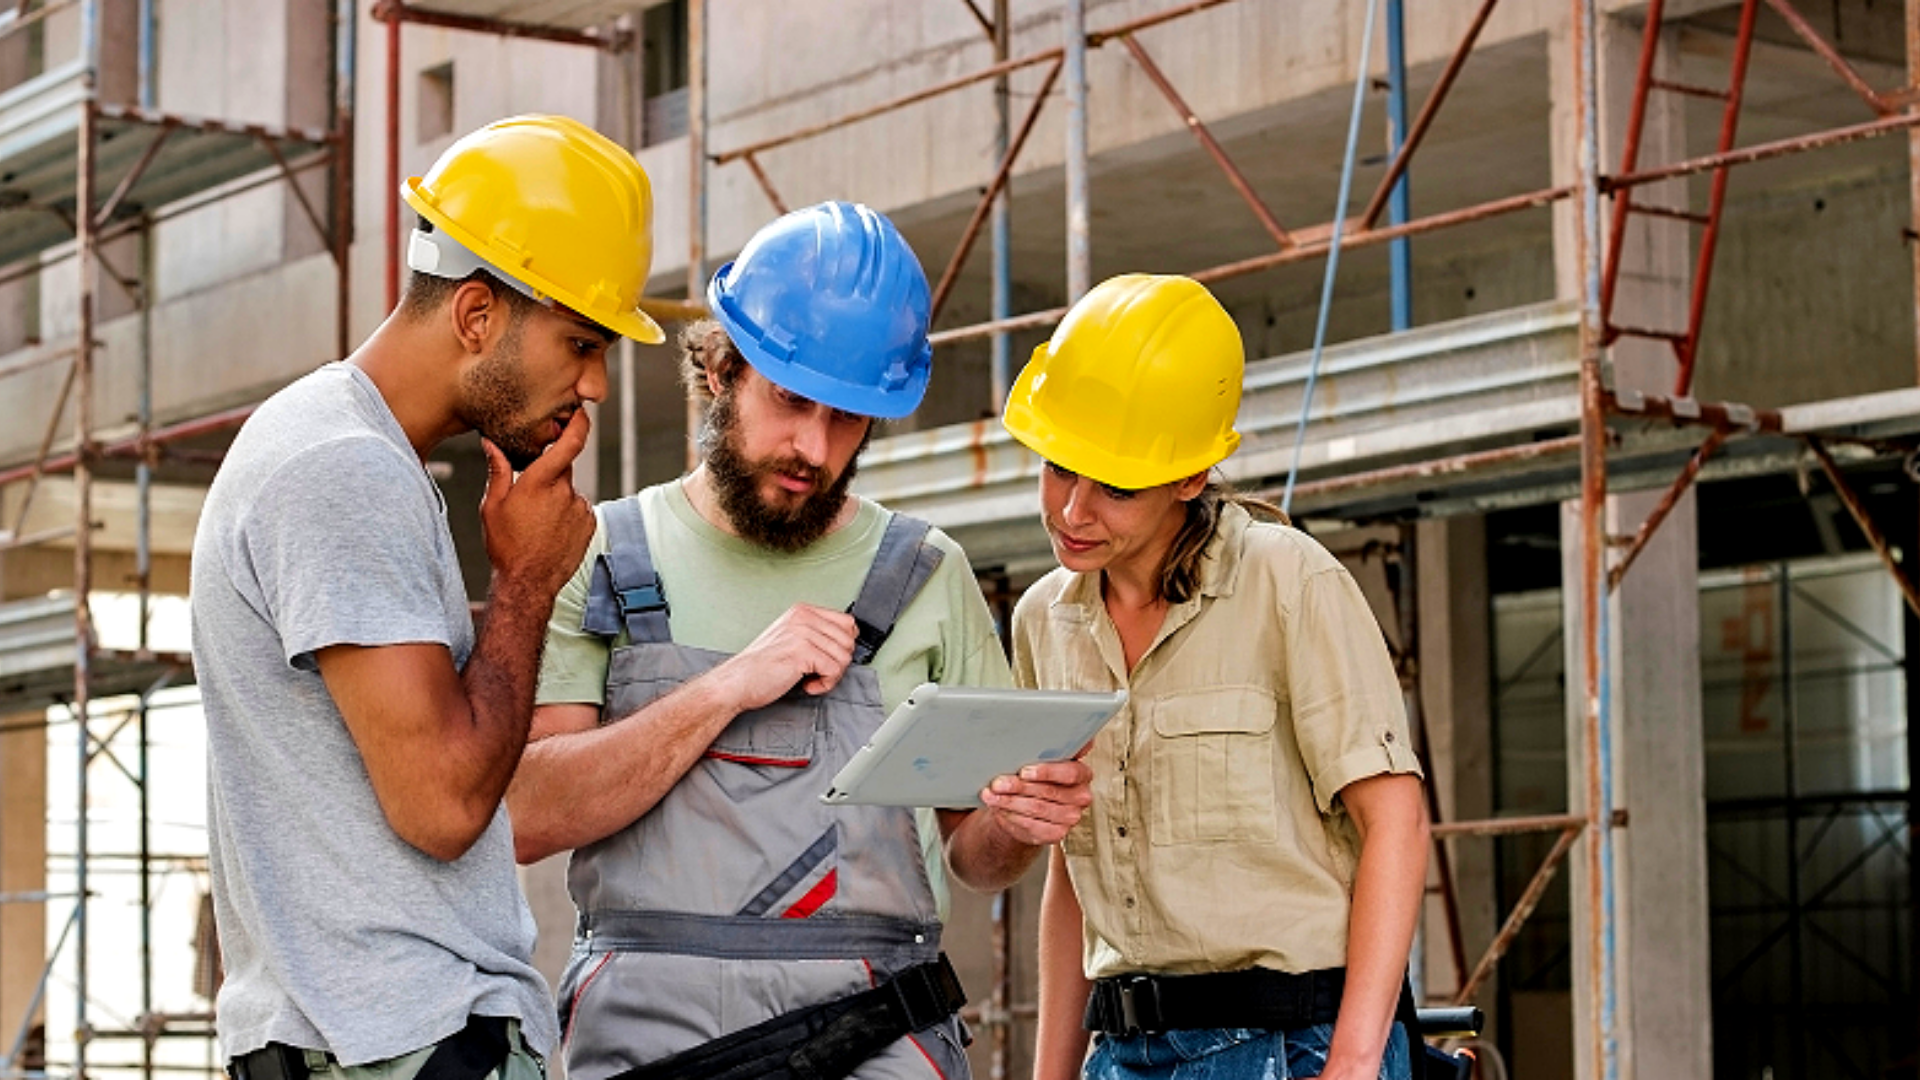 A trio of construction workers look at a tablet on a job site.